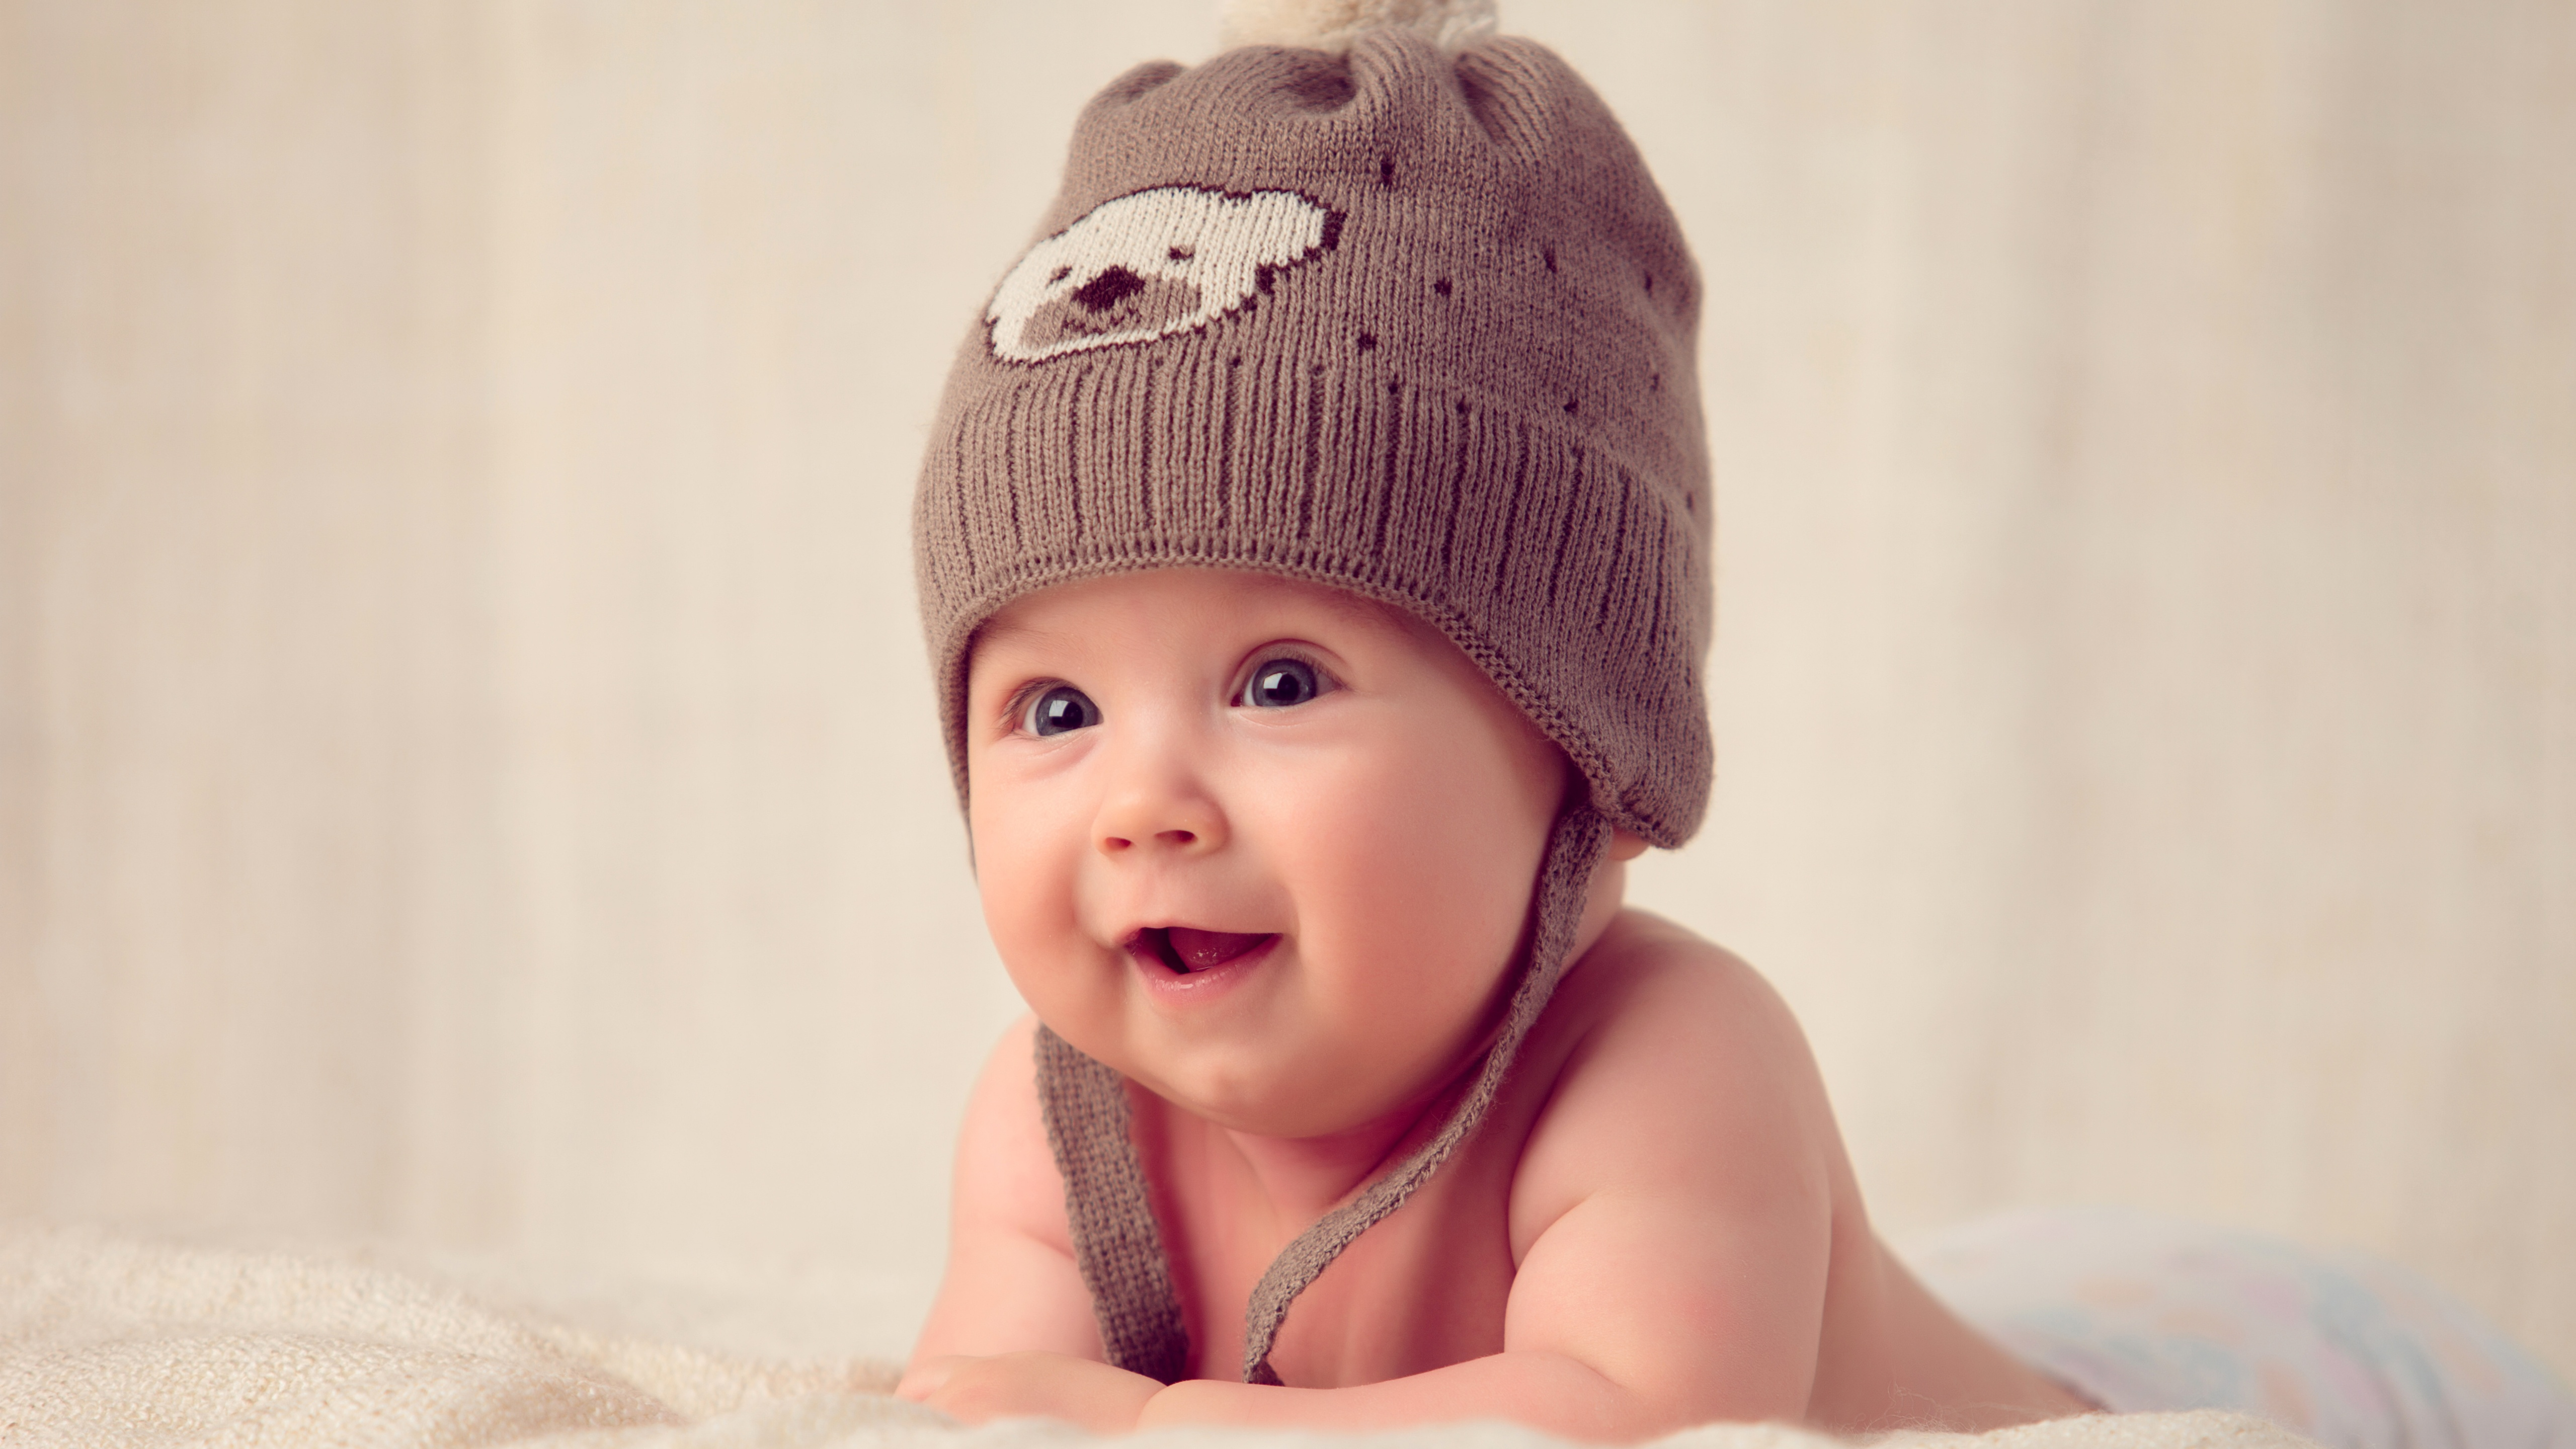 Cute Baby Hat Cap Wallpapers in jpg format for free download cbcb4e7f5a0